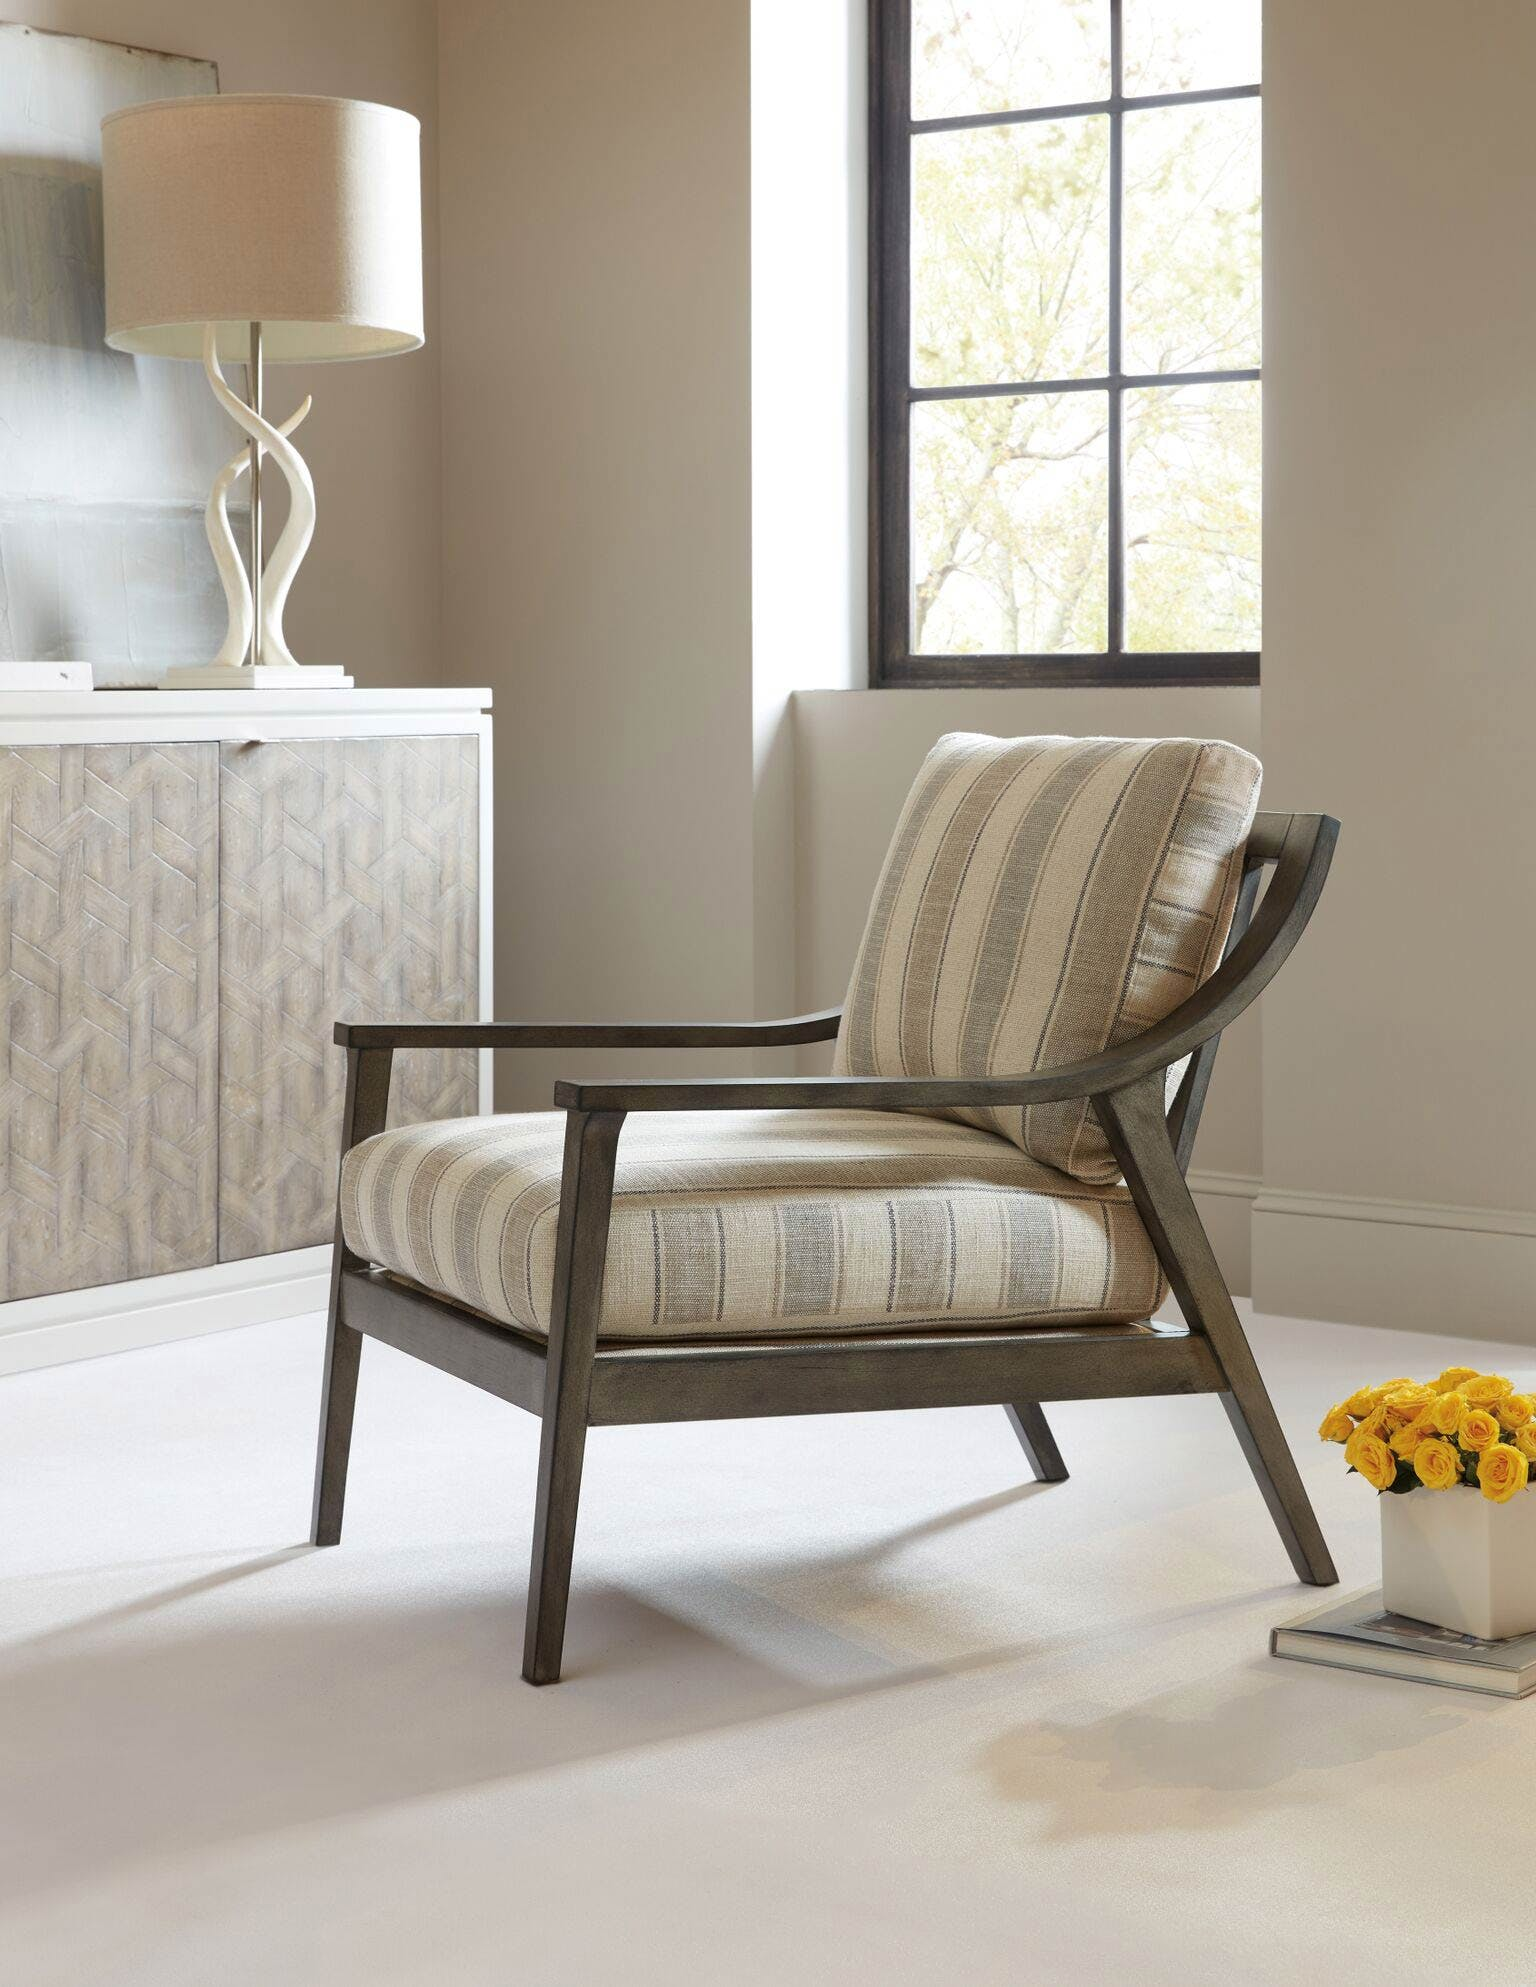 Fantastic Updated Classics Trendy Transitional Home Furnishings Download Free Architecture Designs Scobabritishbridgeorg